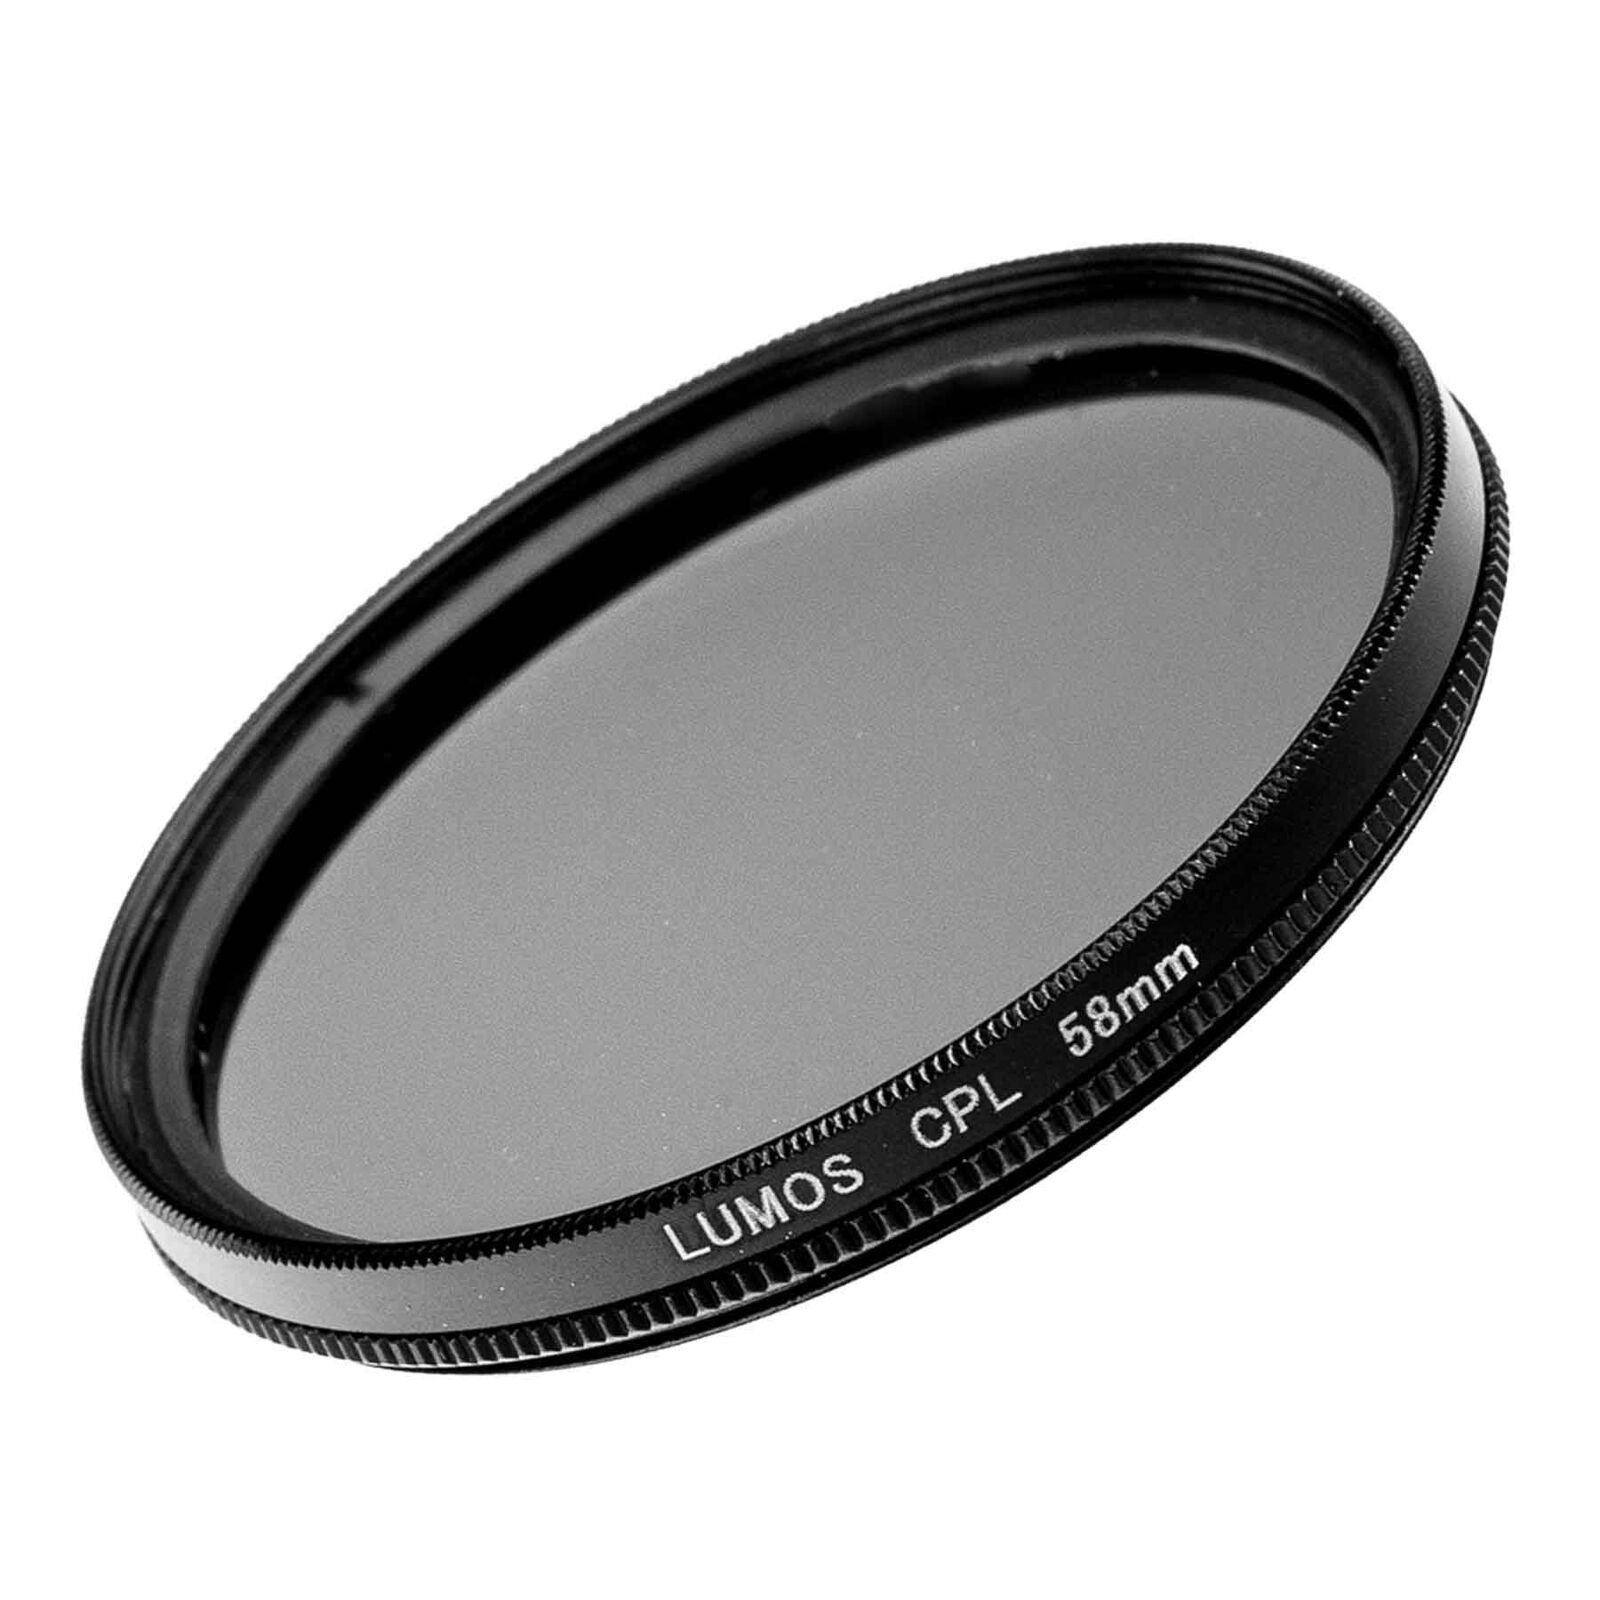 Polfilter Ø 58mm LUMOS cpl Pol Filter Kamera Objektiv Polarisationsfilter 58 mm